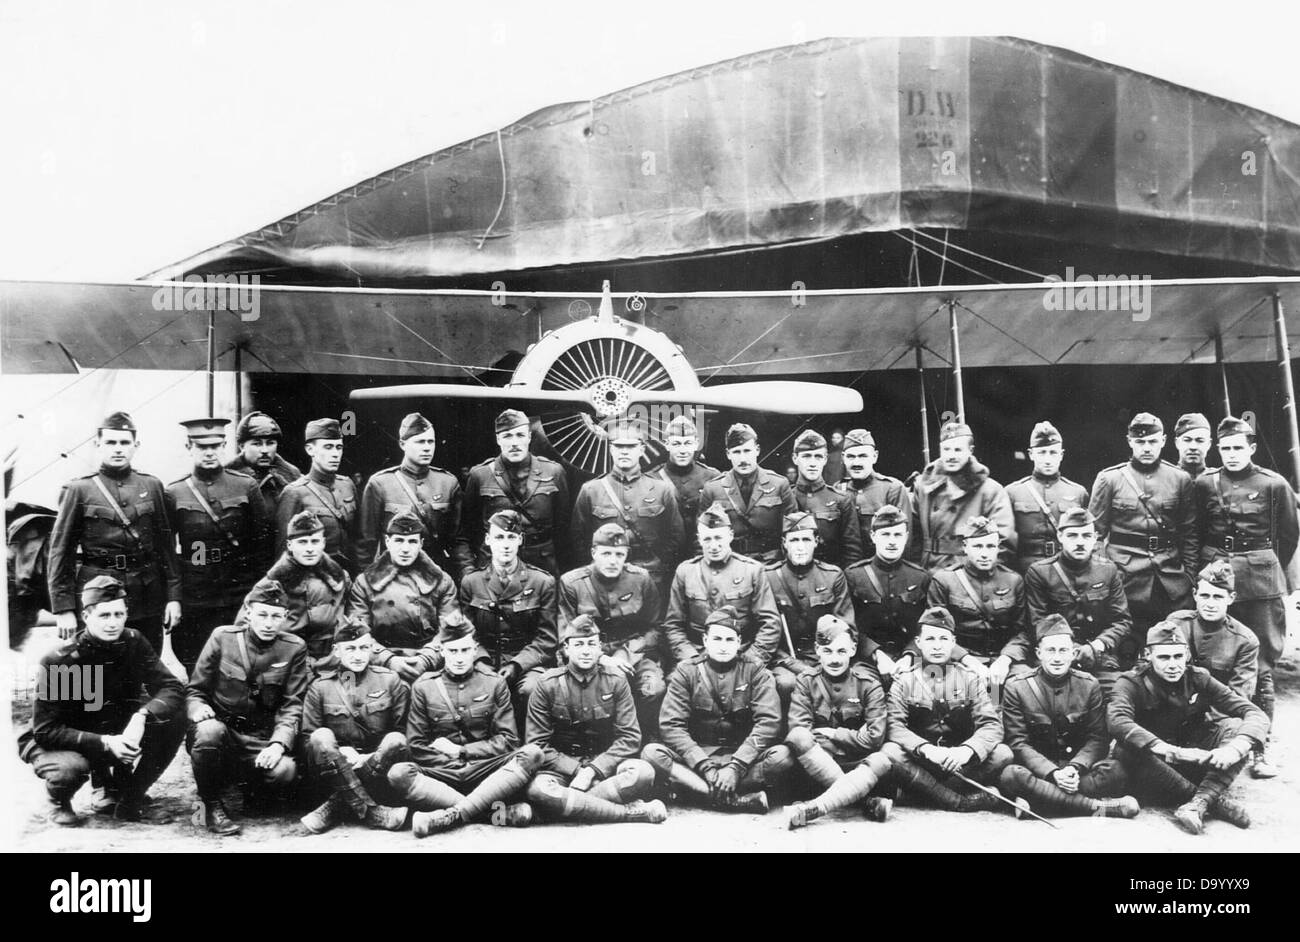 24th Aero Squadron - Stock Image